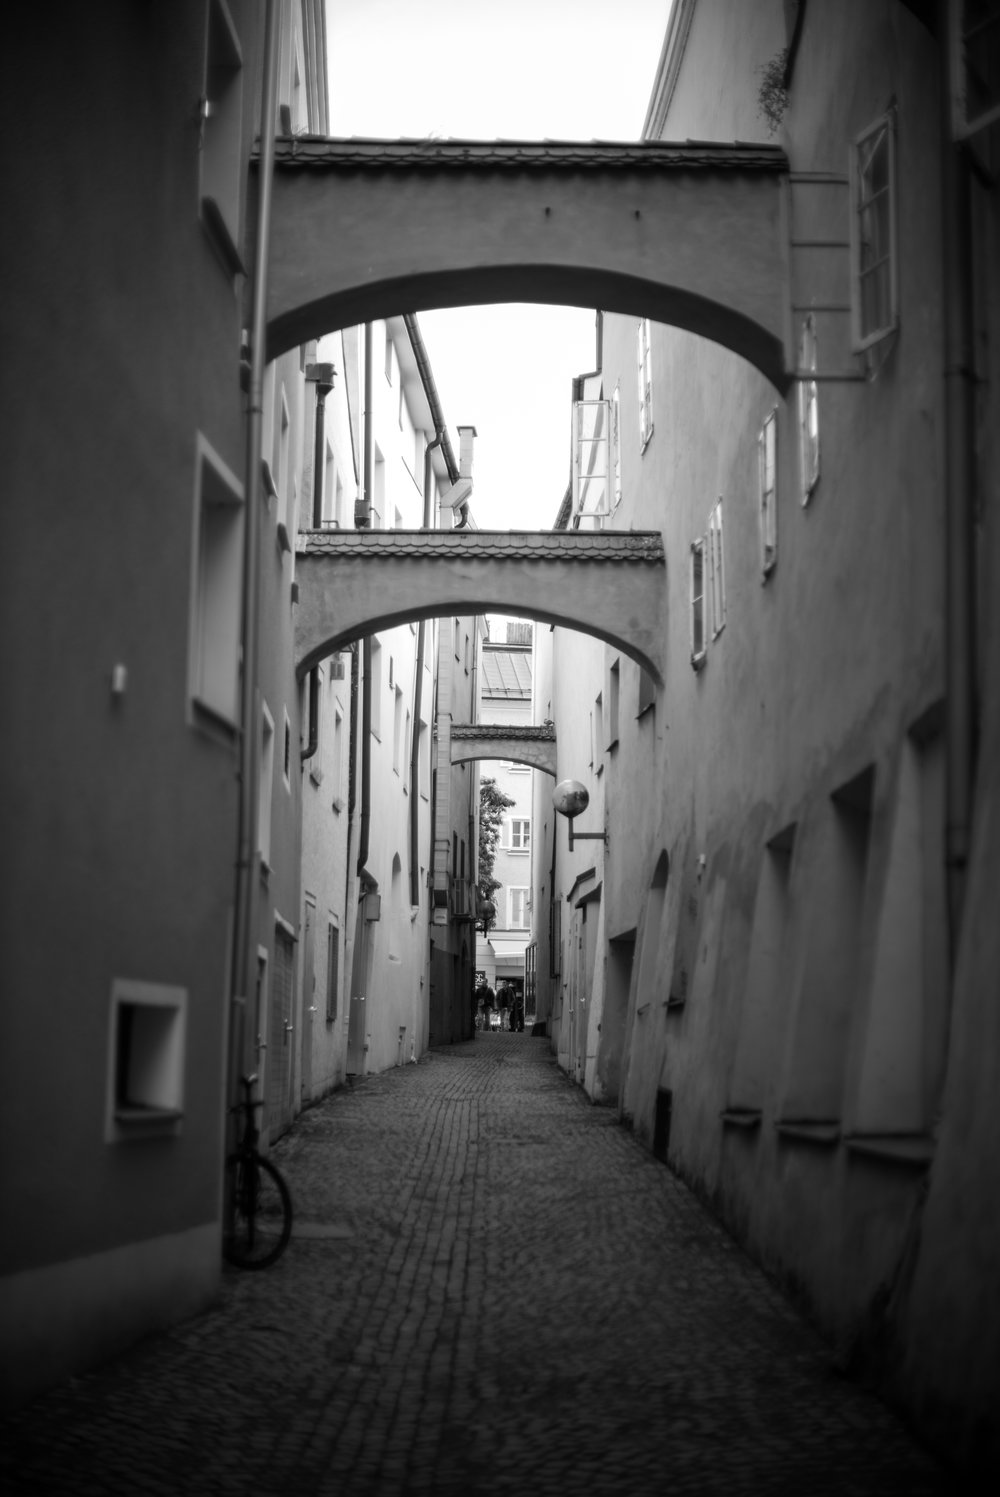 Triple arches on this side alley street in Germany